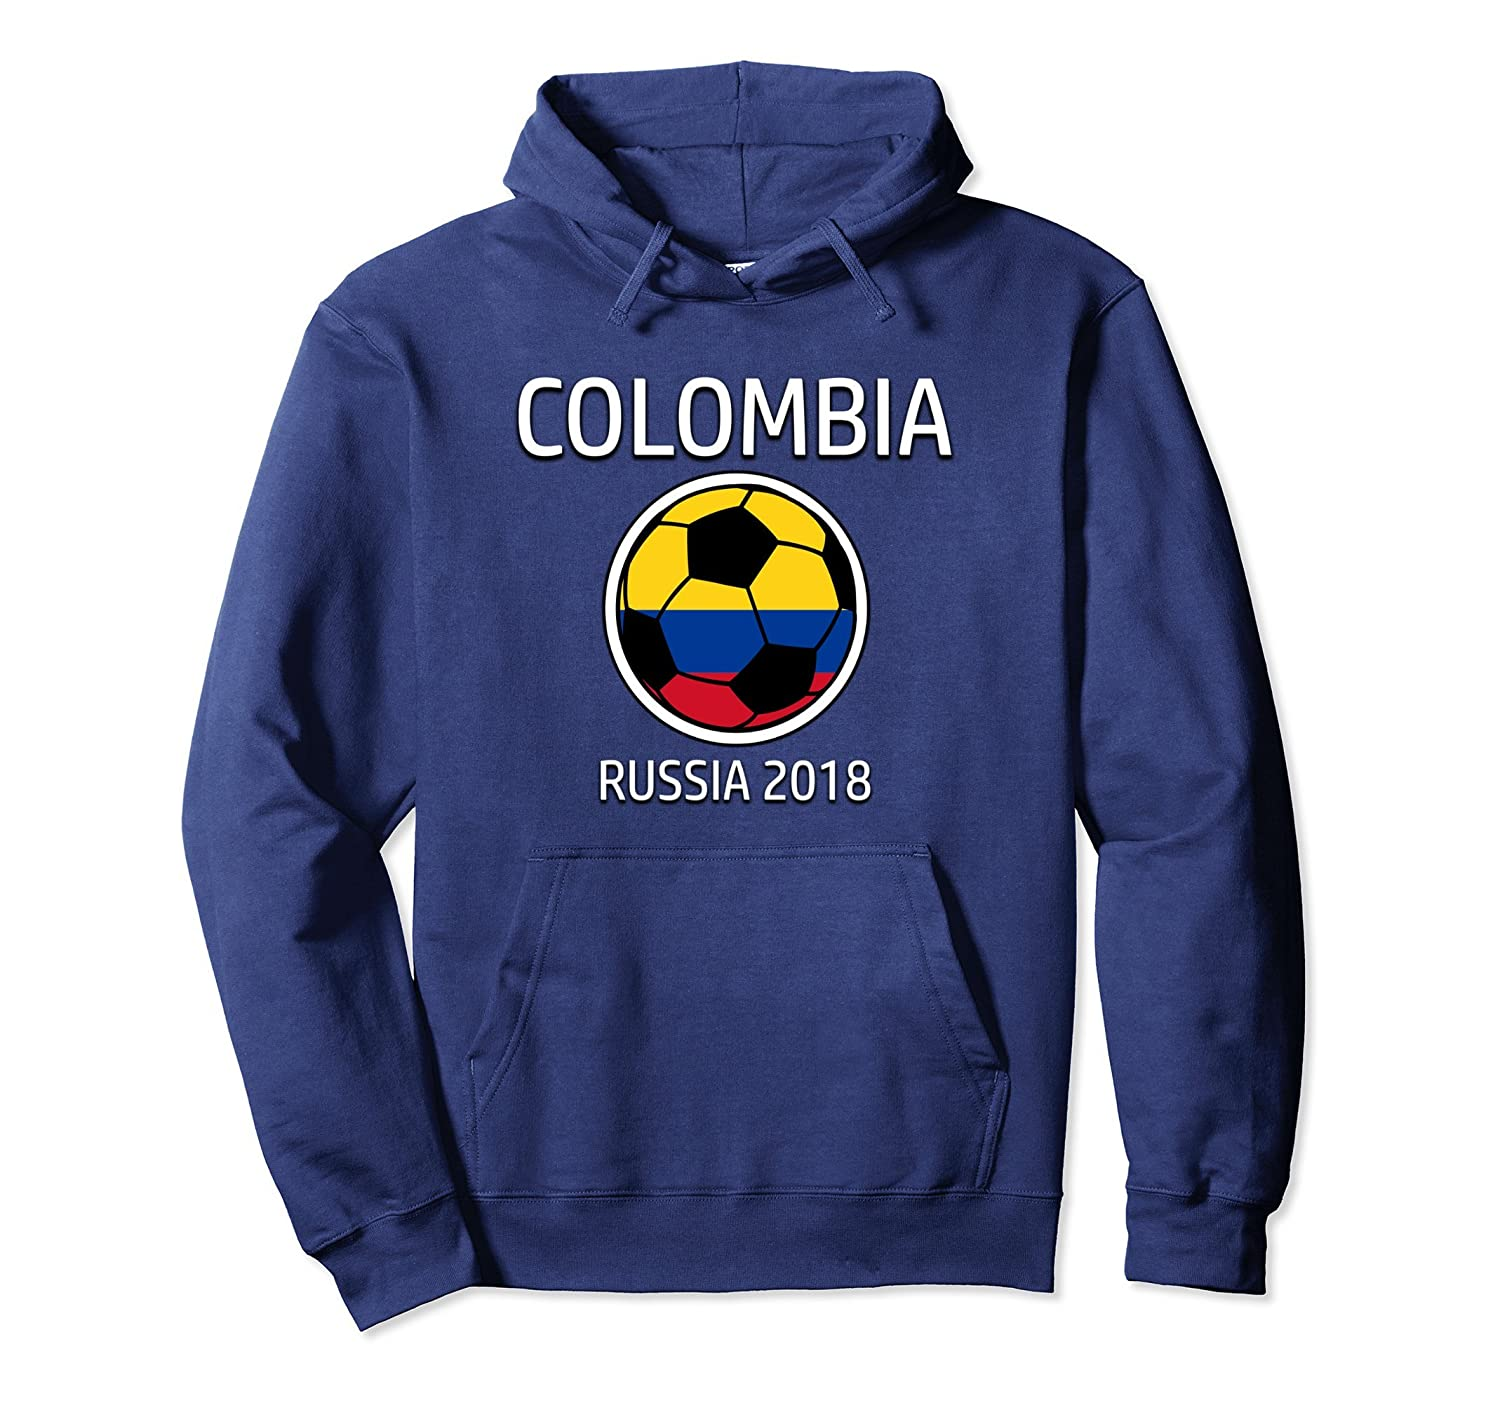 Colombia Colombian Soccer Team 2018 Football Hoodie-ah my shirt one gift 121a159ef